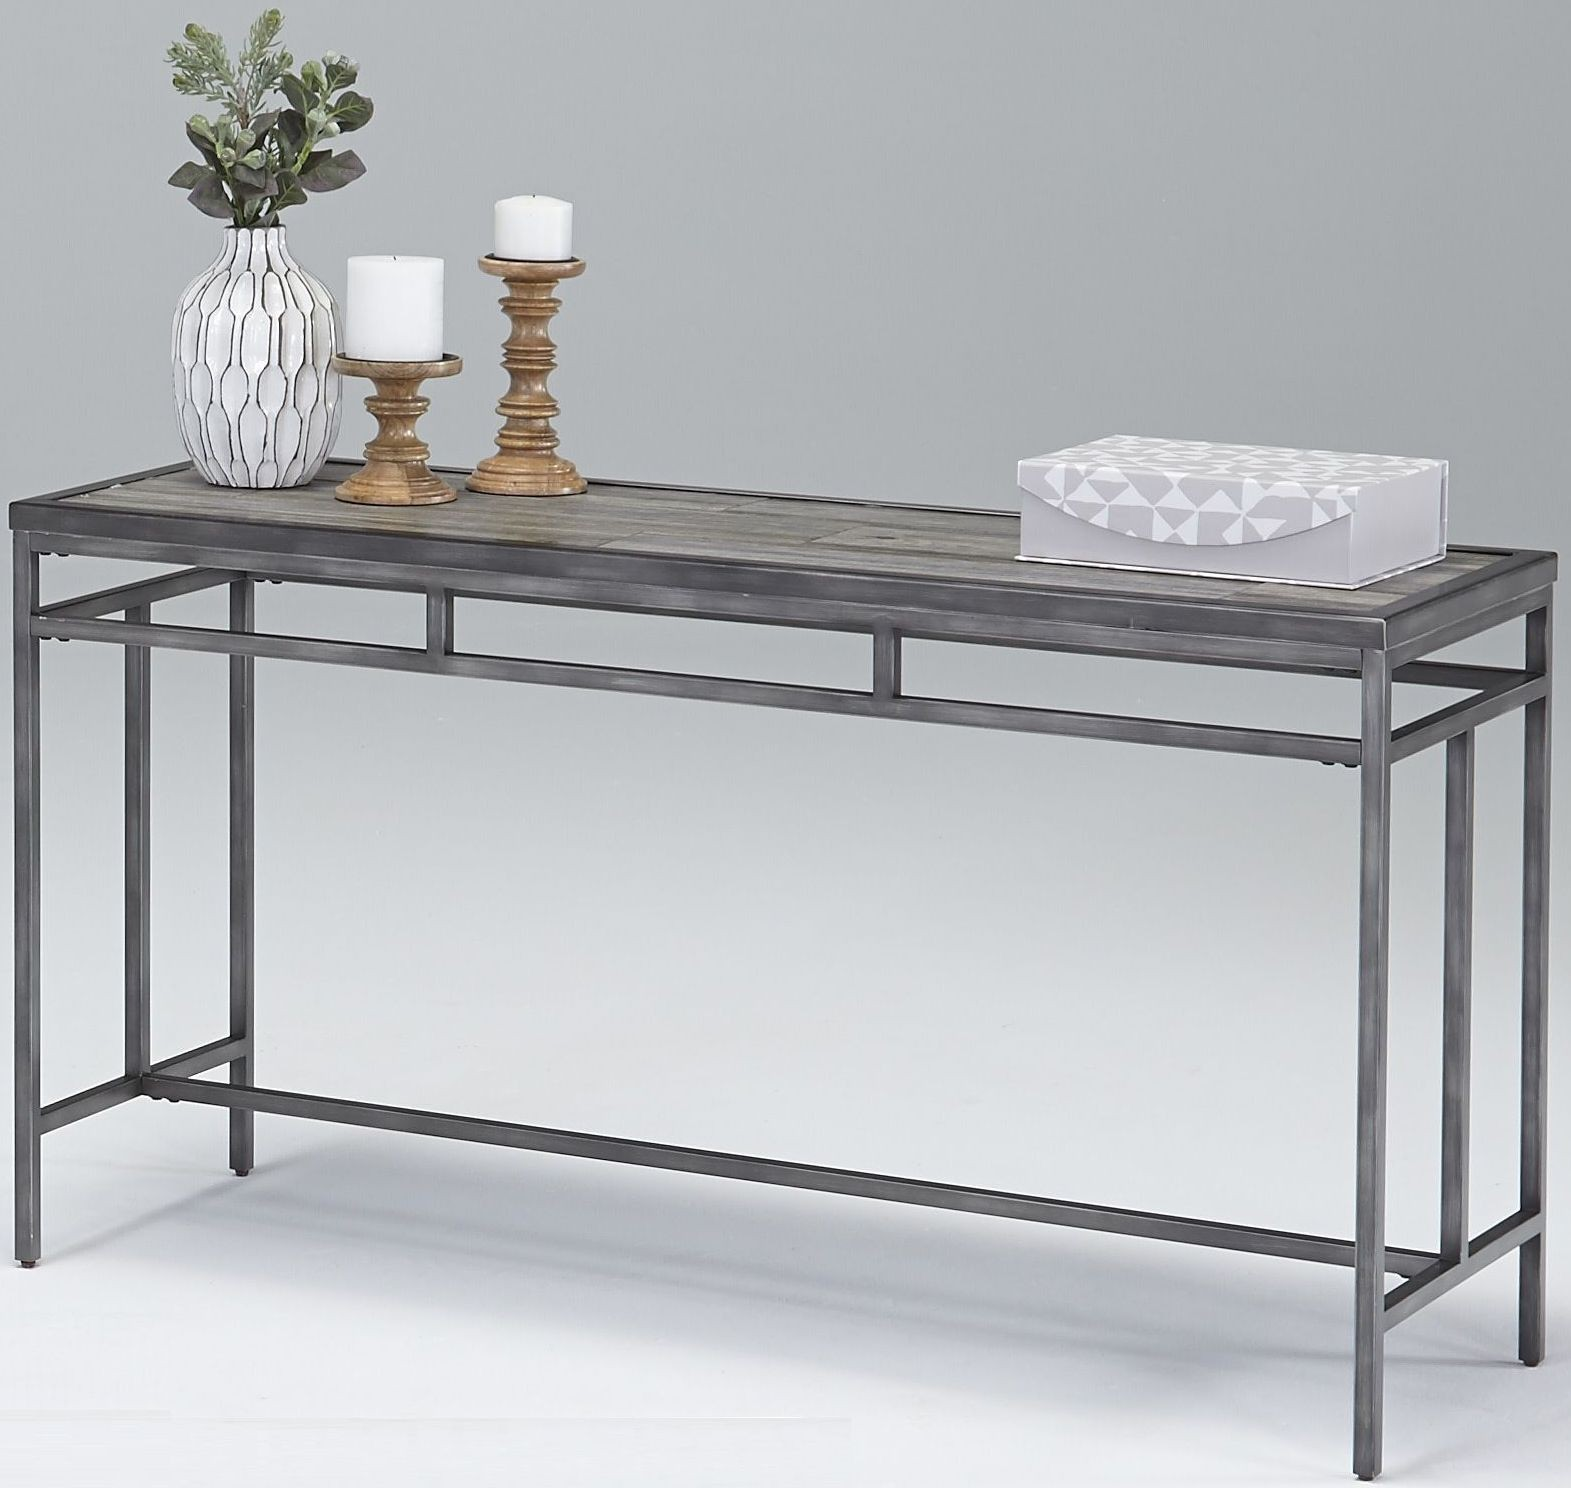 Tiled Console Table ~ Aurora sky tile console table from progressive furniture